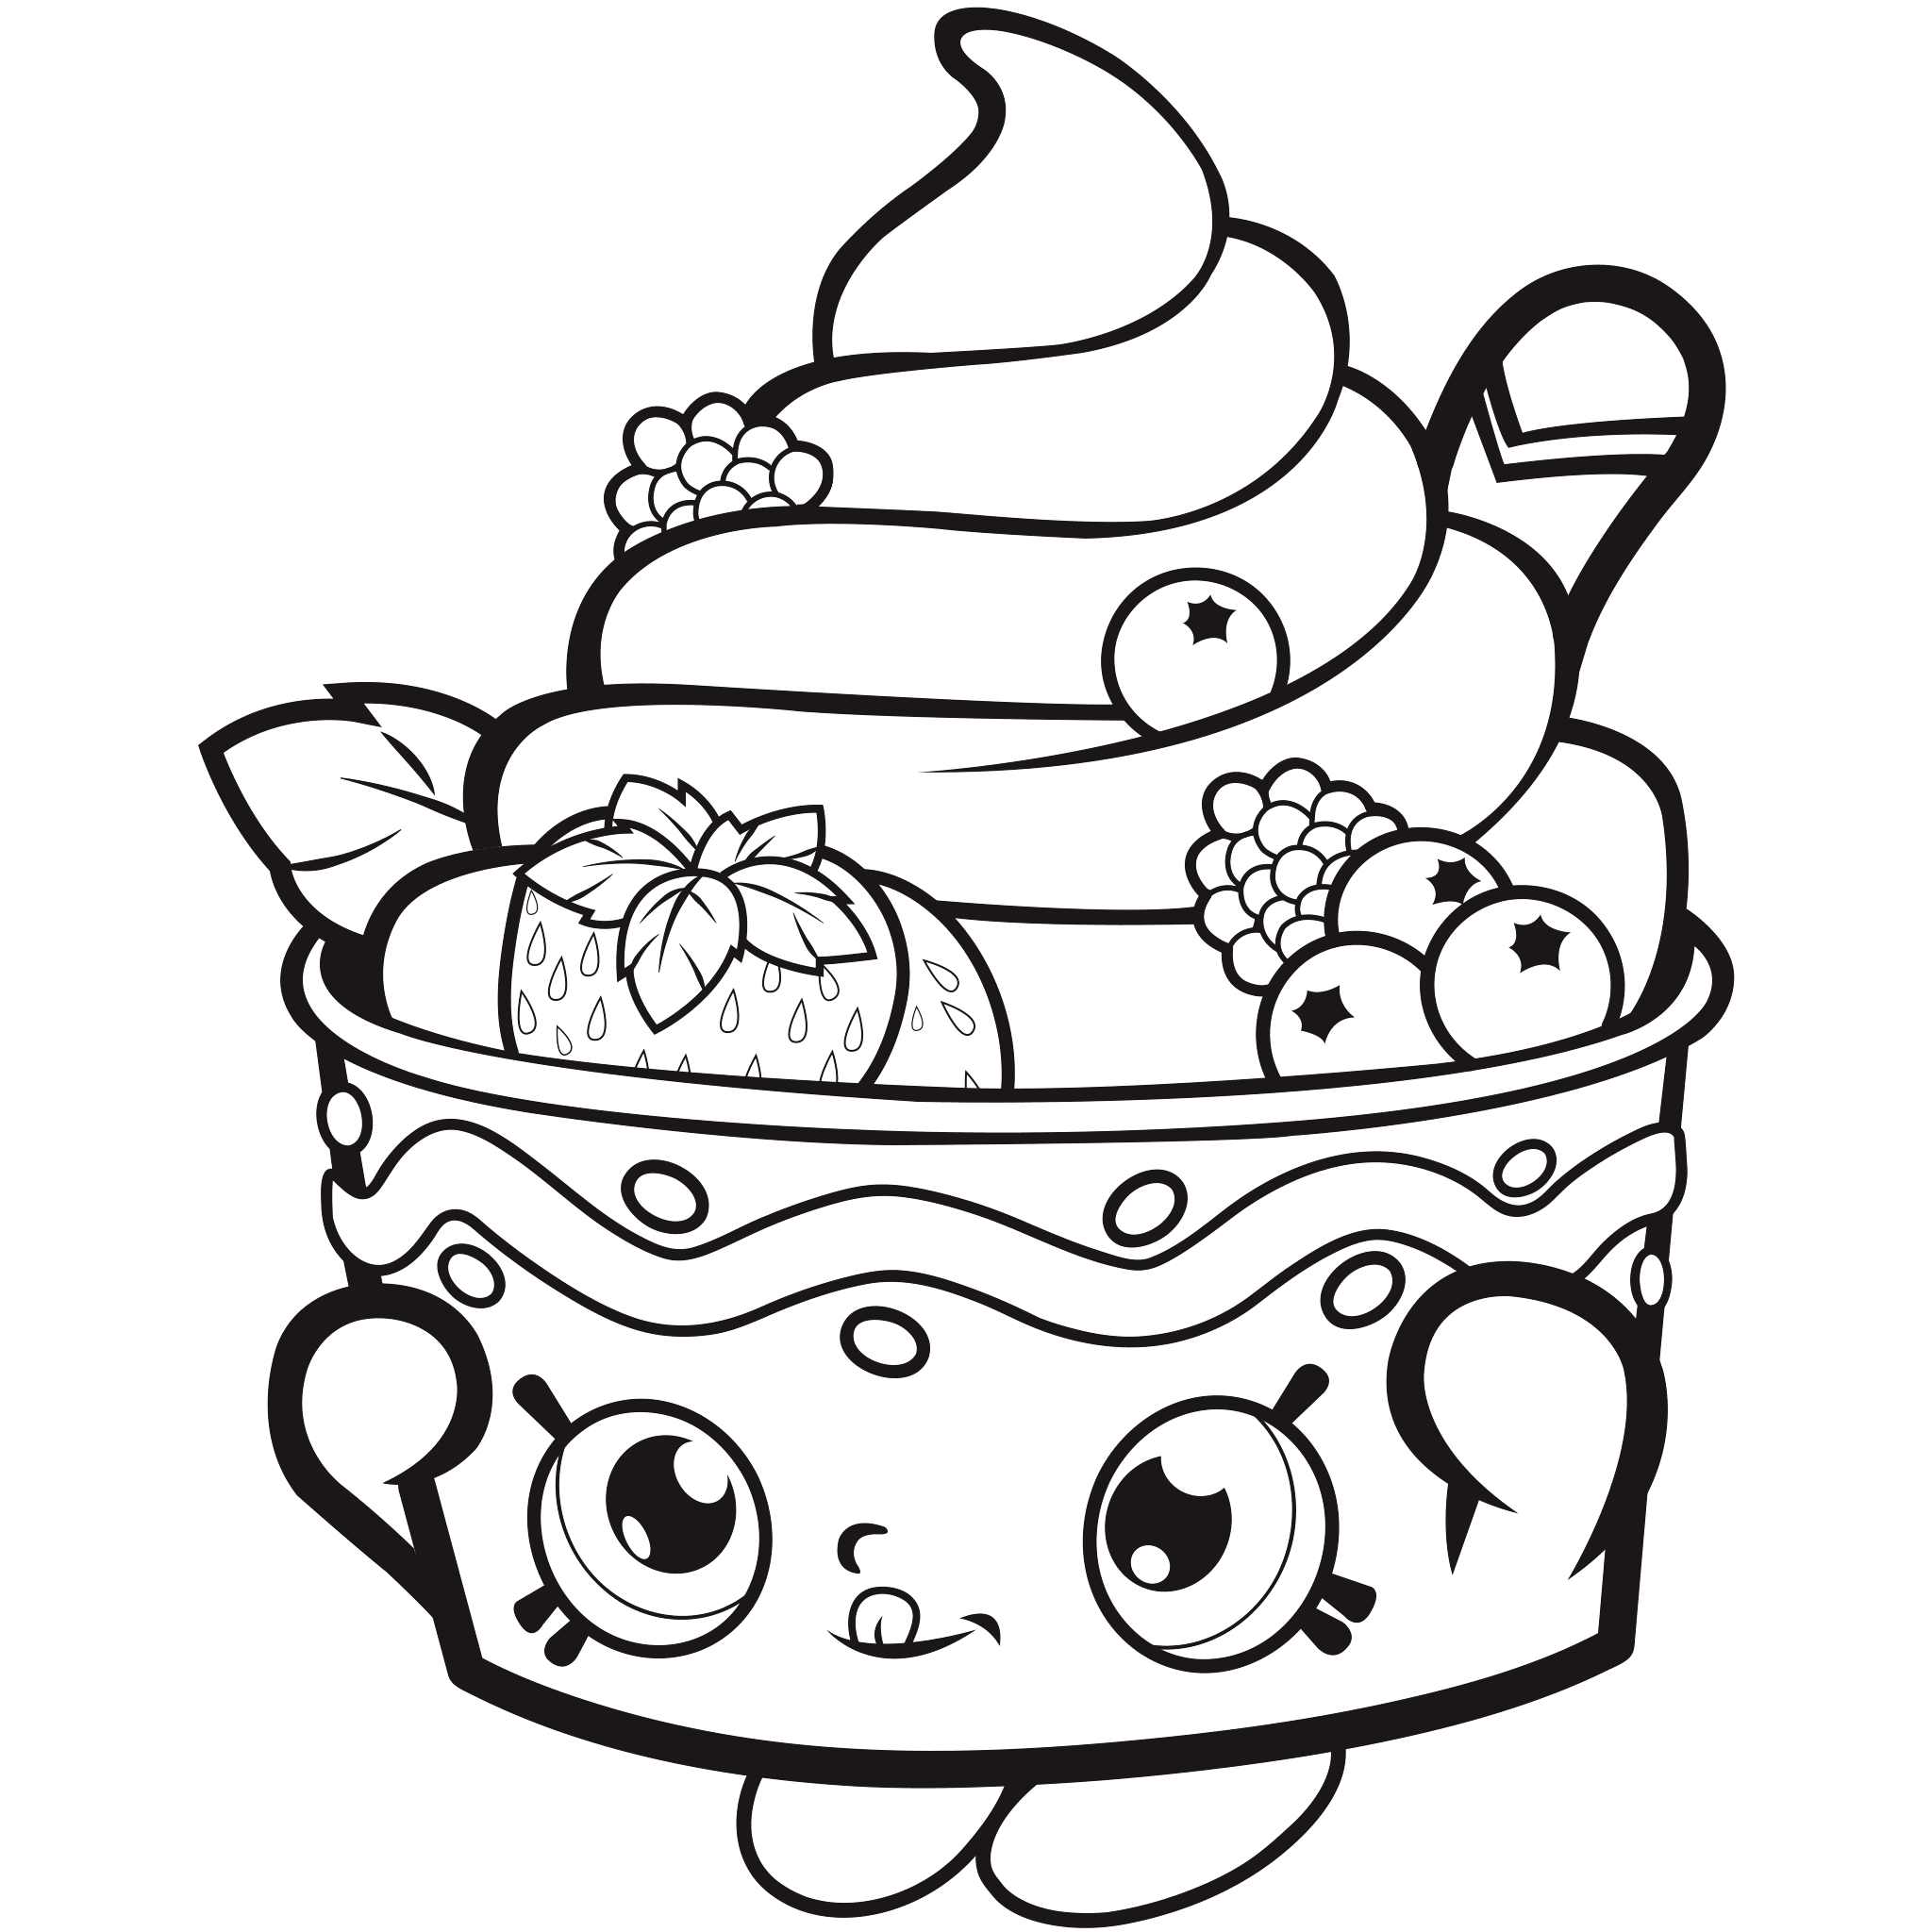 Free Shopkins Coloring Pages - Coloring Pages For Kids - Free Shopkins Coloring Printables